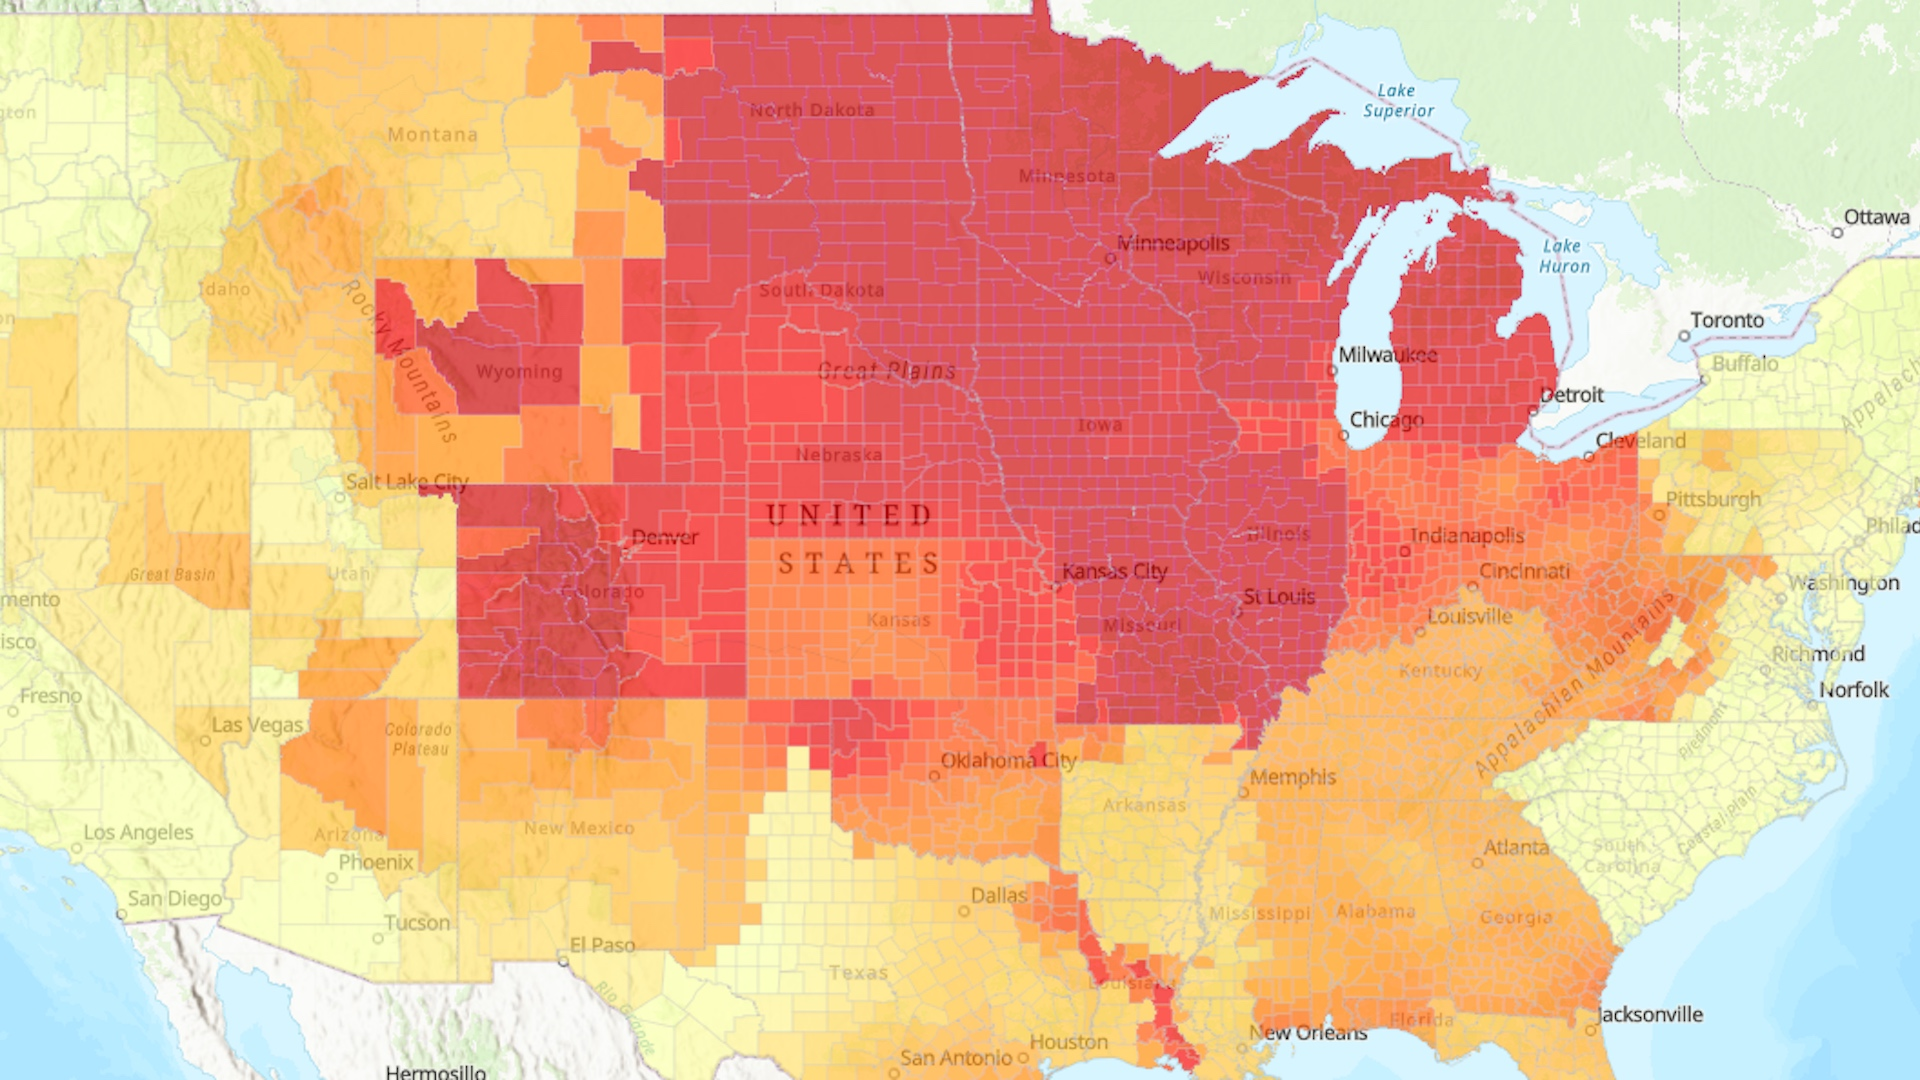 photo of Where is growing weed most environmentally sound? image